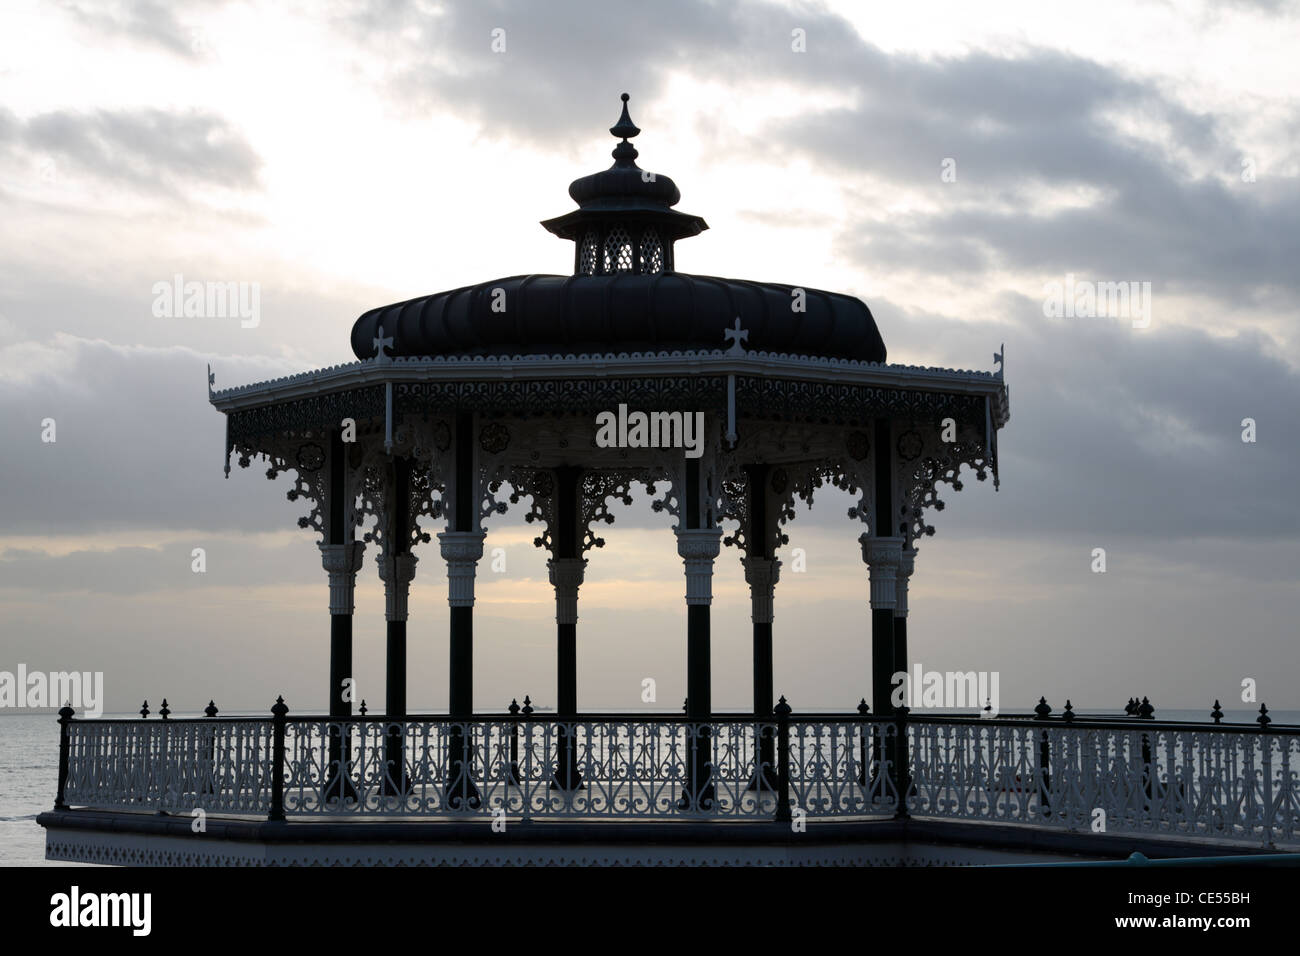 Brighton Bandstand known as 'The Birdcage' Stock Photo